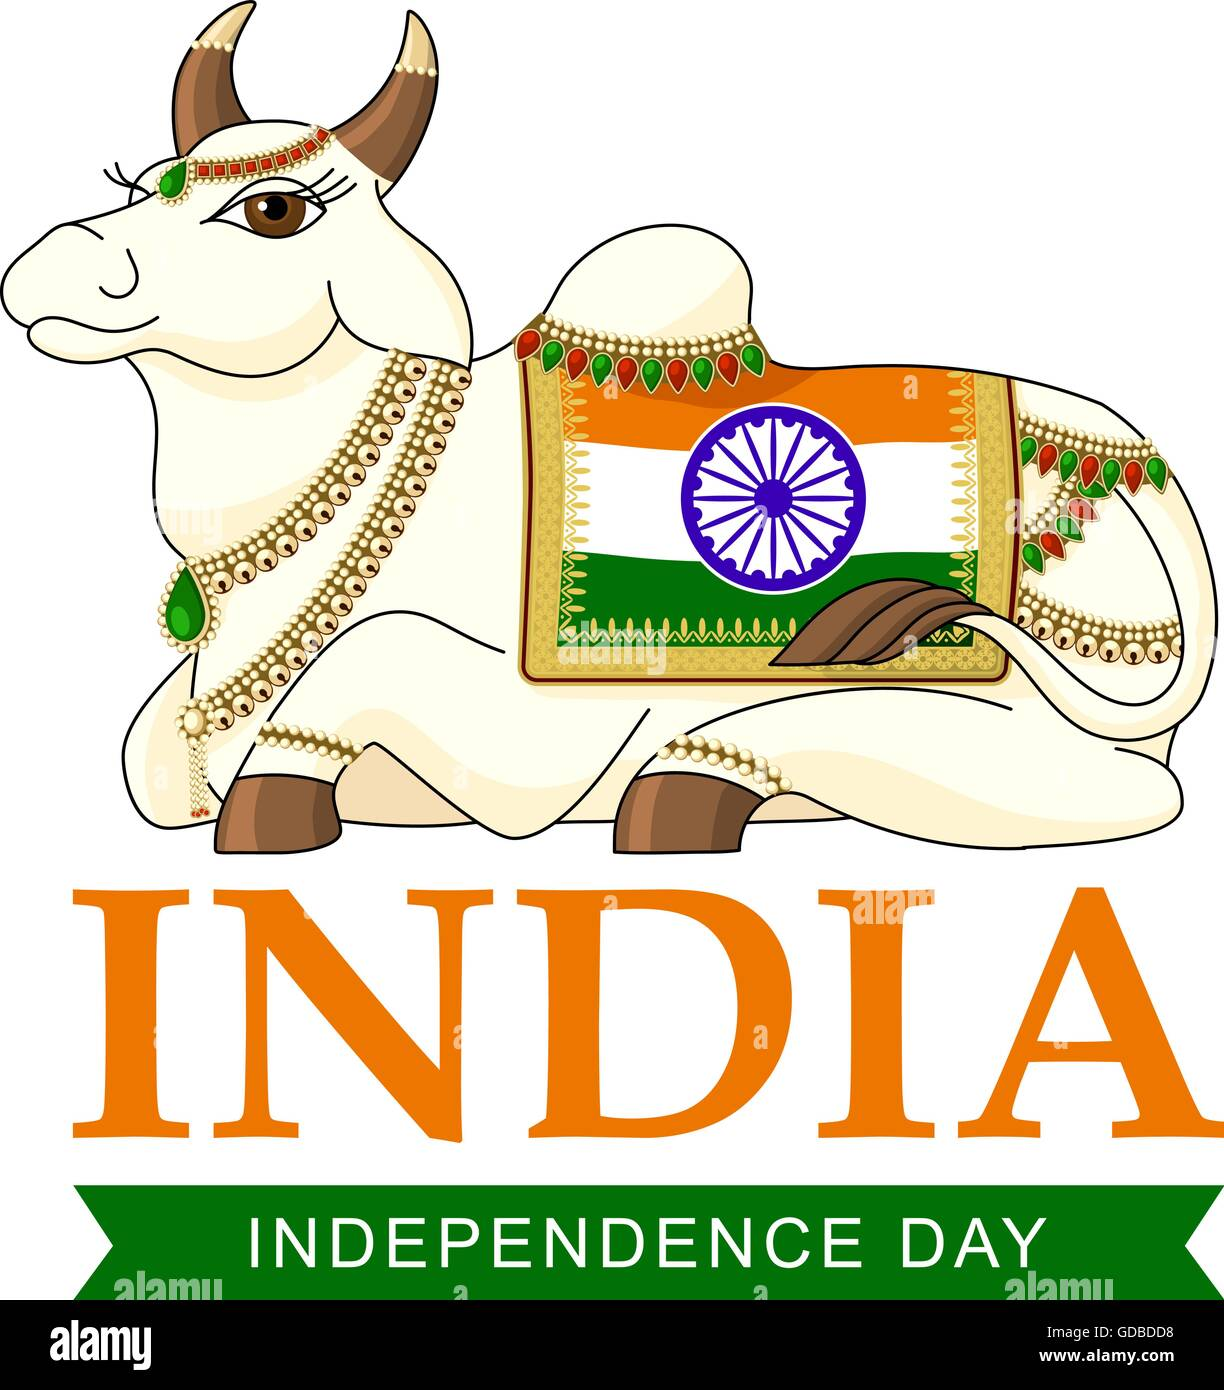 Indian Independence Day - Stock Image